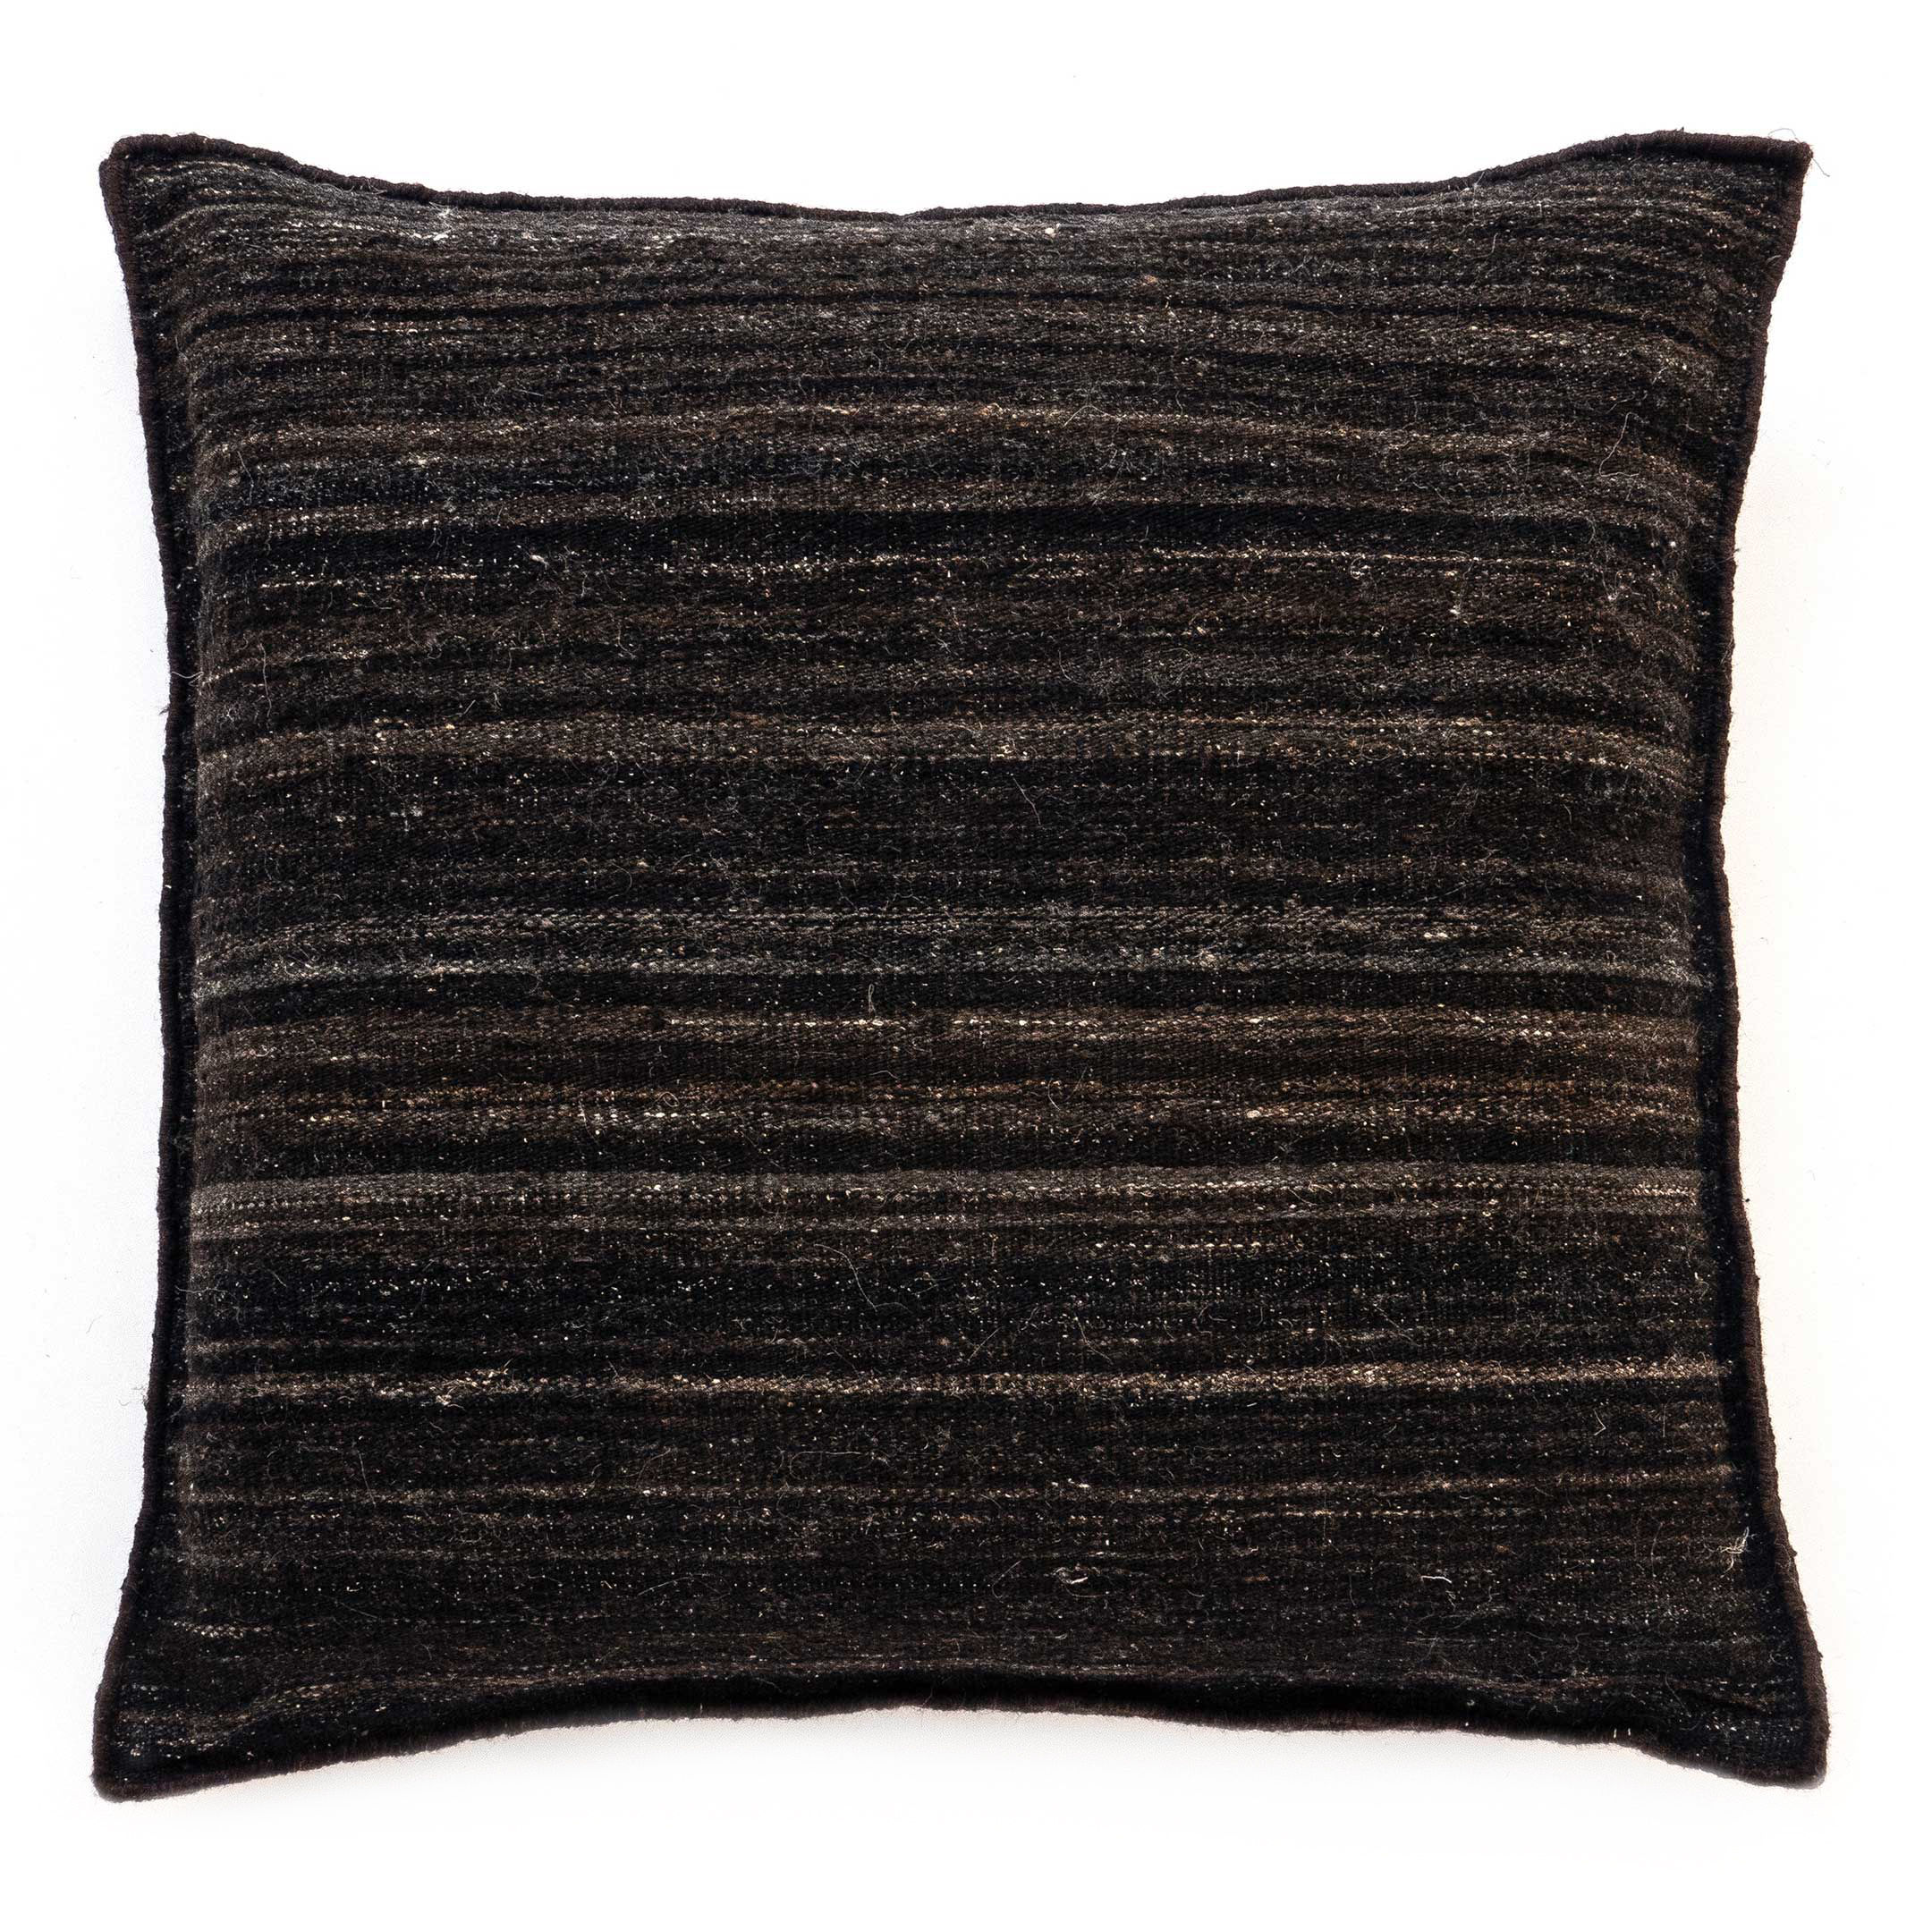 Decoration - Cushions & Poufs - Well Being Heavy Cushion - / 80 x 80 cm - Eco-designed by Nanimarquina - Kilim / Black - Afghan wool, Cork, Cotton